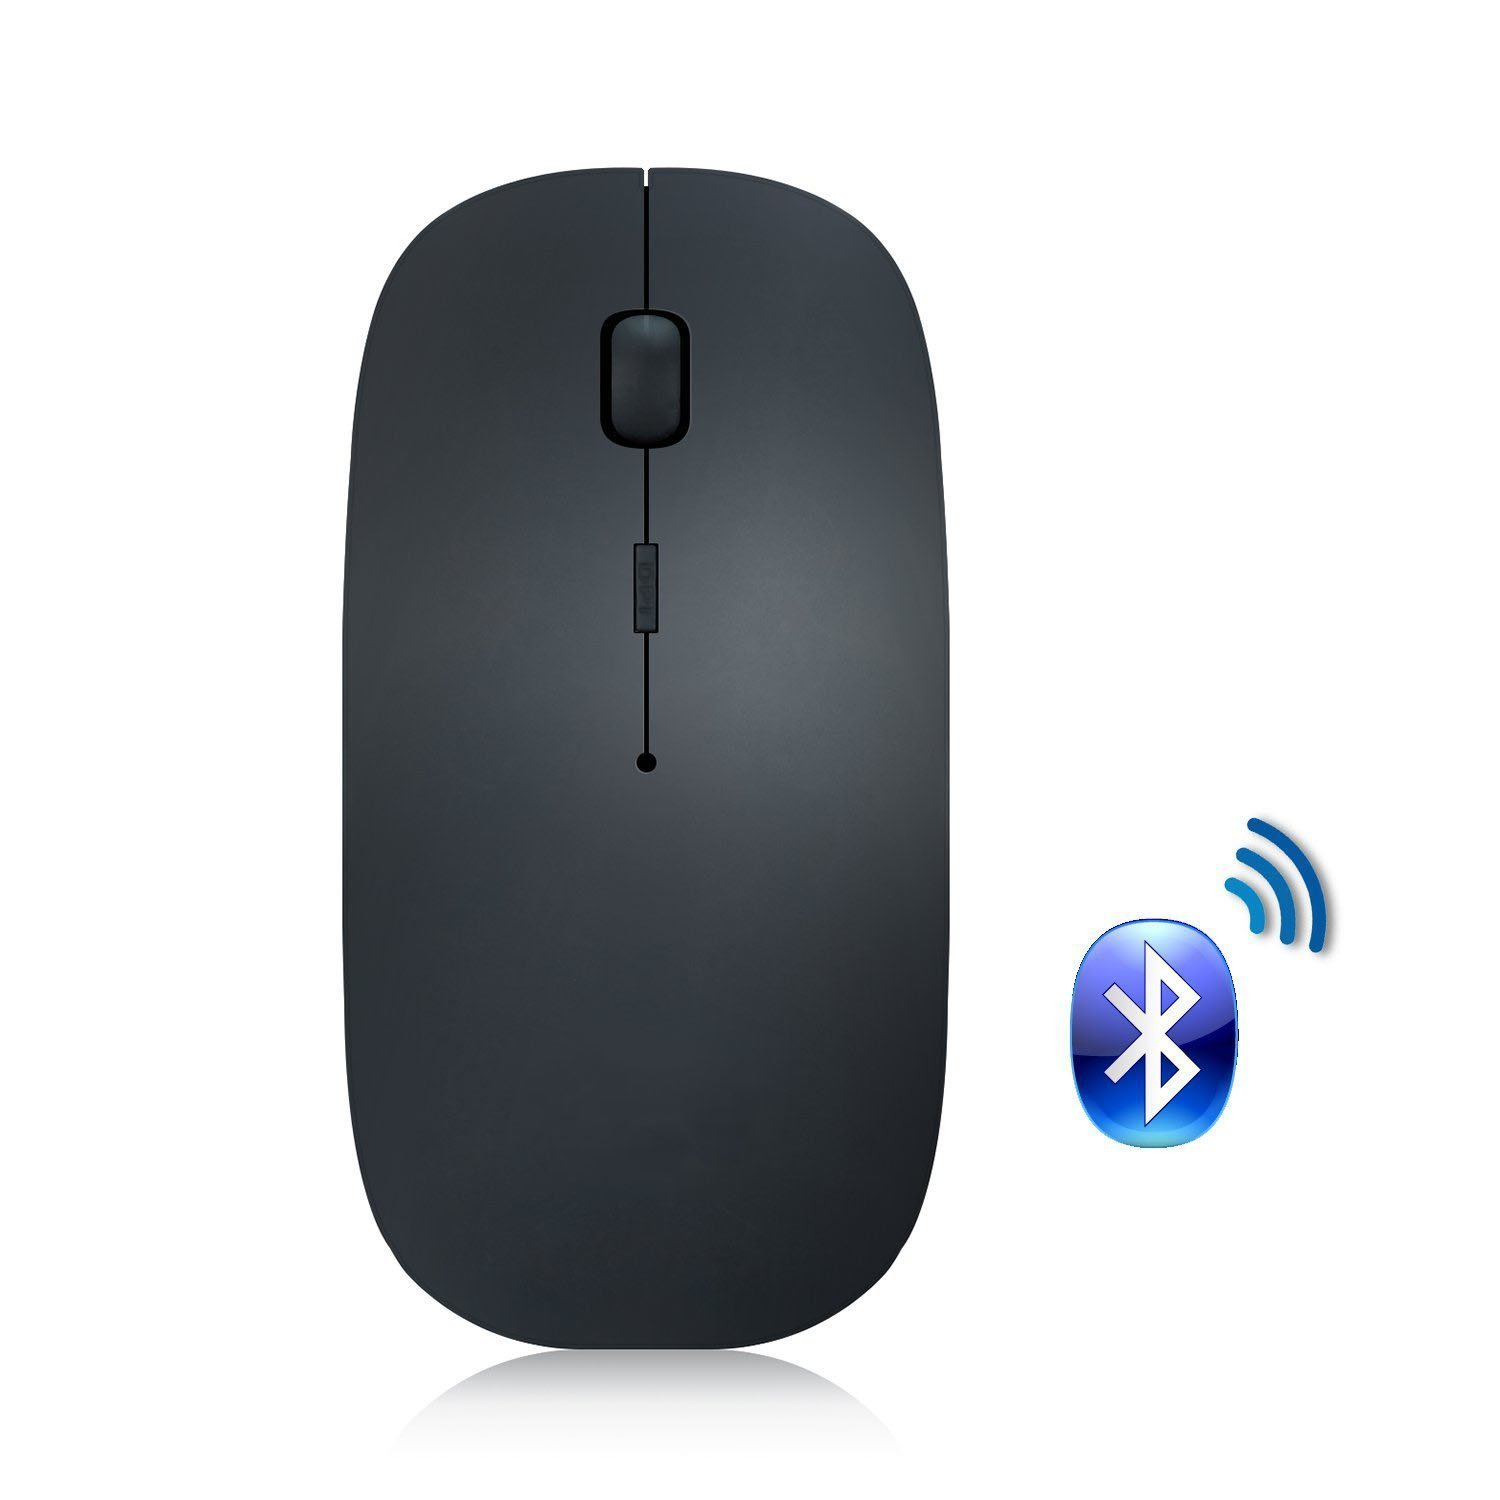 Bluetooth Mouse, Attoe Portable Ultra Thin Noiseless Bluetooth Wireless Rechargeable Optical Mouse with Adjustable DPI for PC Laptop Tablet Notebook(Black)